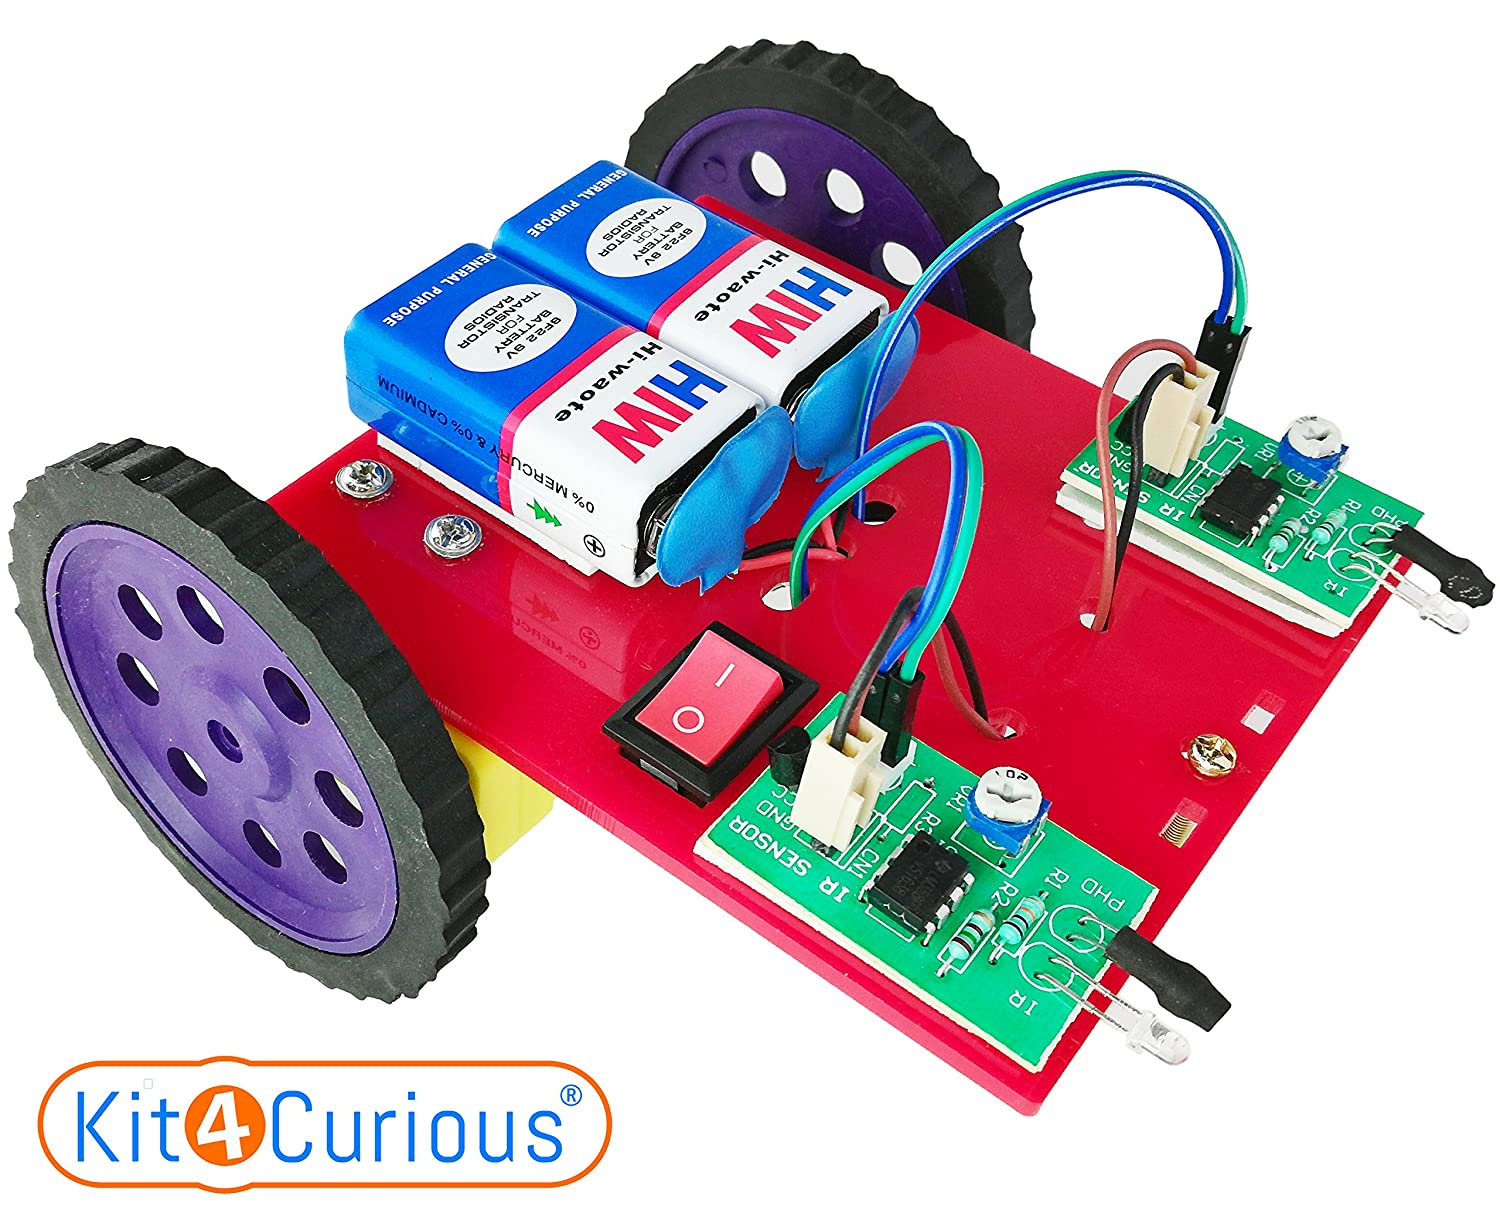 Buy Kit4curious 2in1 Robot Object Follower Avoider 2 Transistor Line Scary Cat Ready To Run Kit With Instruction Manual Online At Low Prices In India